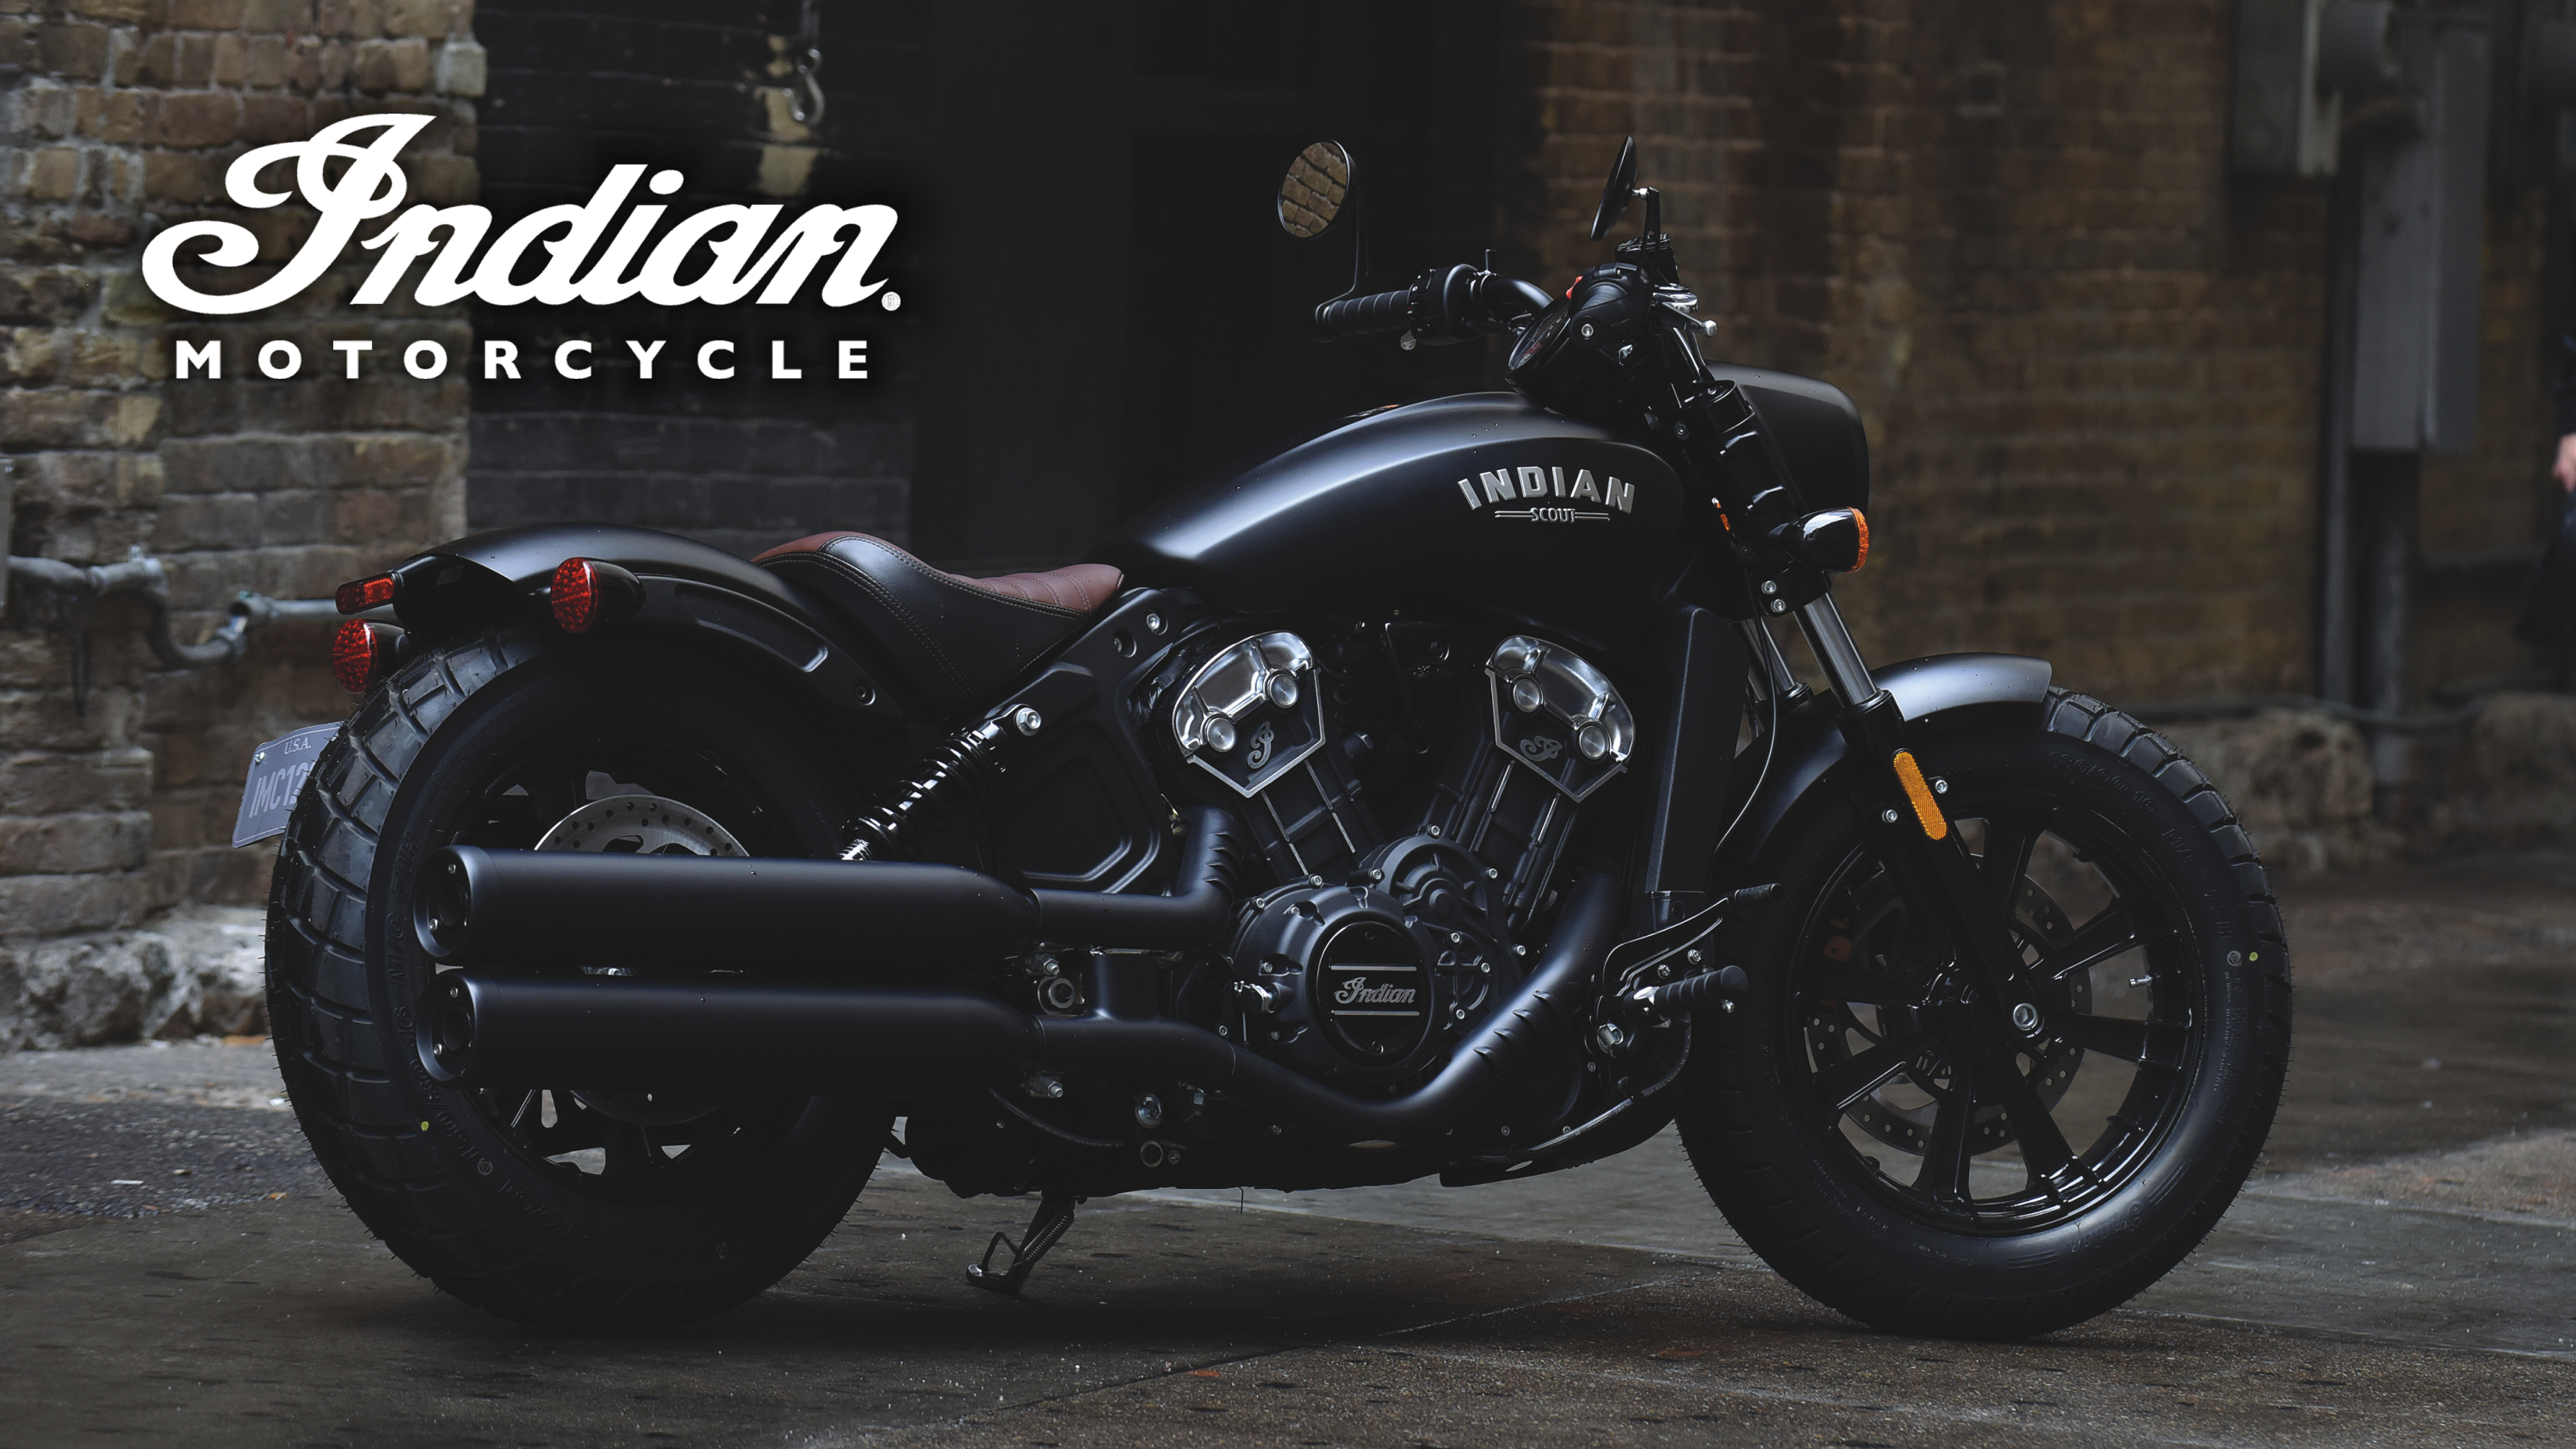 Indian scout bobber hd wallpapers - Indian scout bike hd wallpaper ...